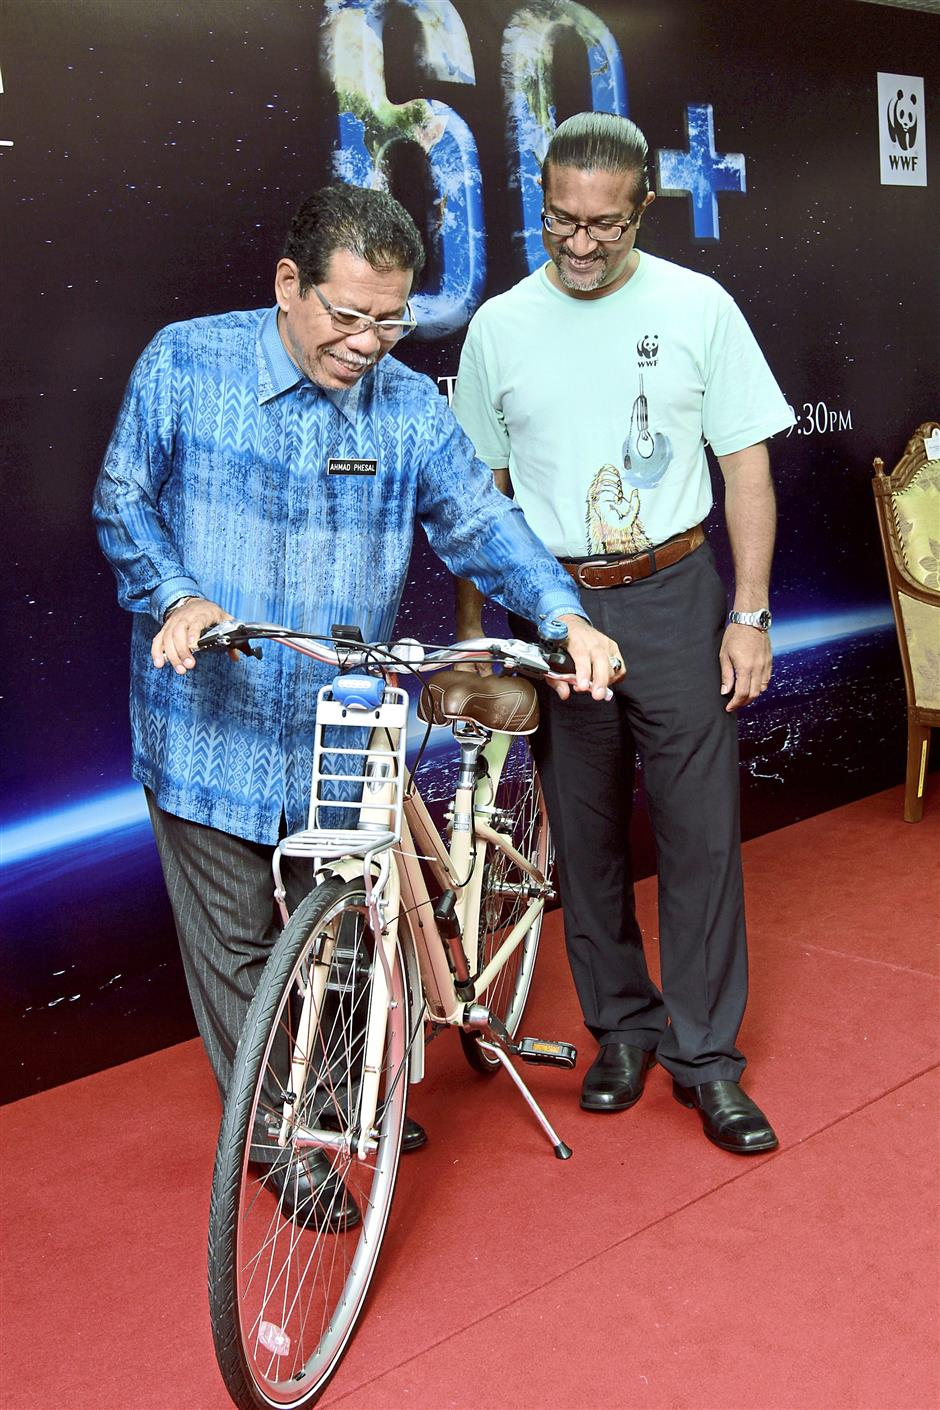 Healthy option: Ahmad Phesal (left) checking out a bicycle after pledging to increase the number of cycling routes. With him is Dionysius.